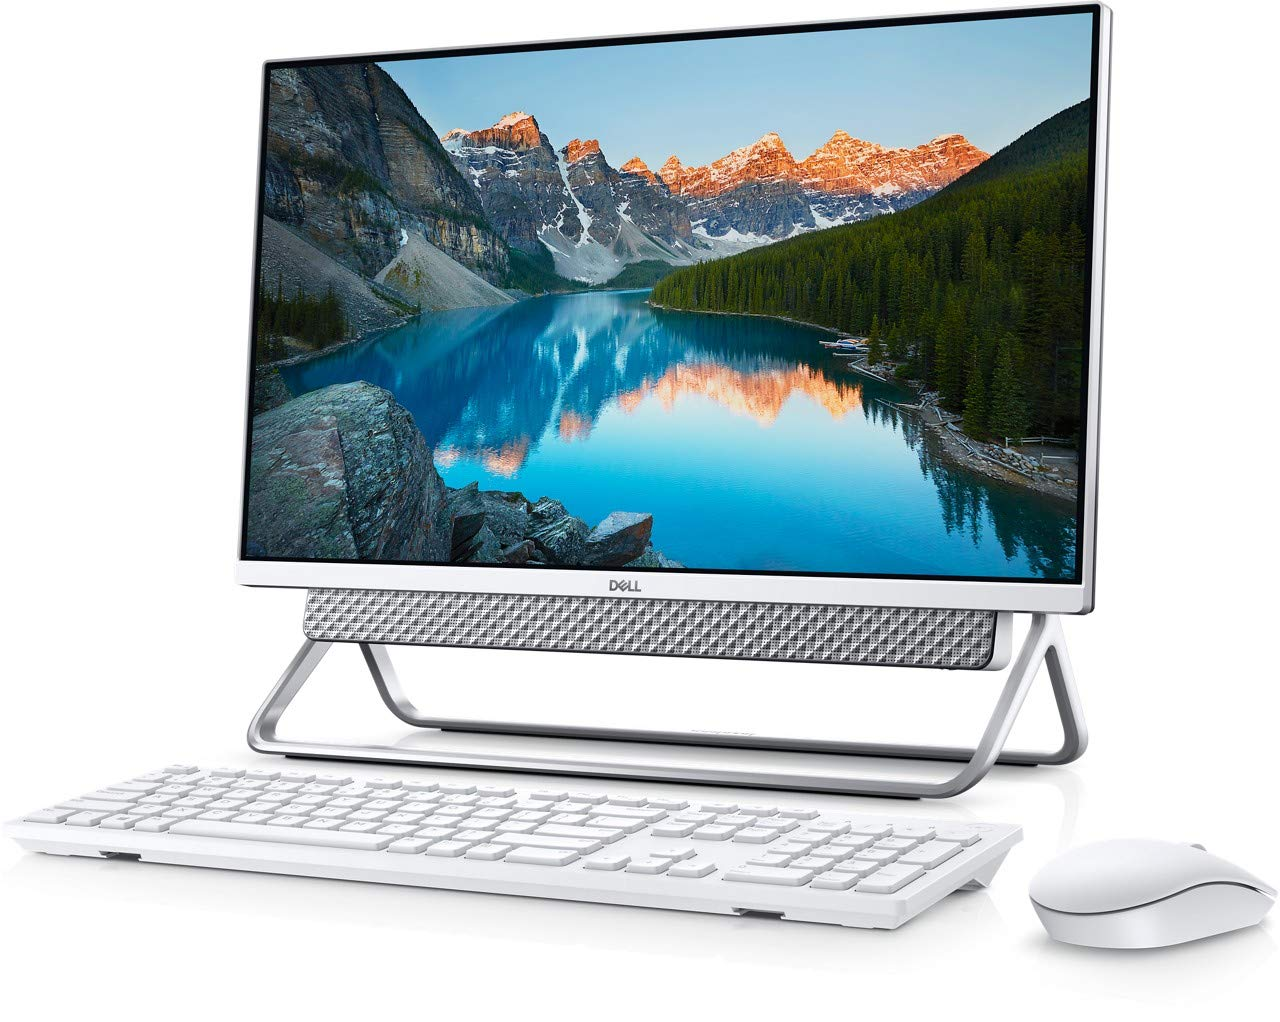 Dell Inspiron 5400 All In One Desktop Computer, 11th Gen Intel Core i5-1135G7, 23.8 Inch FHD Touch Screen, 512GB SSD, 8 GB RAM, Intel® Iris® Xe Graphics, Win 10 Home, Eng Ar KB, Silver